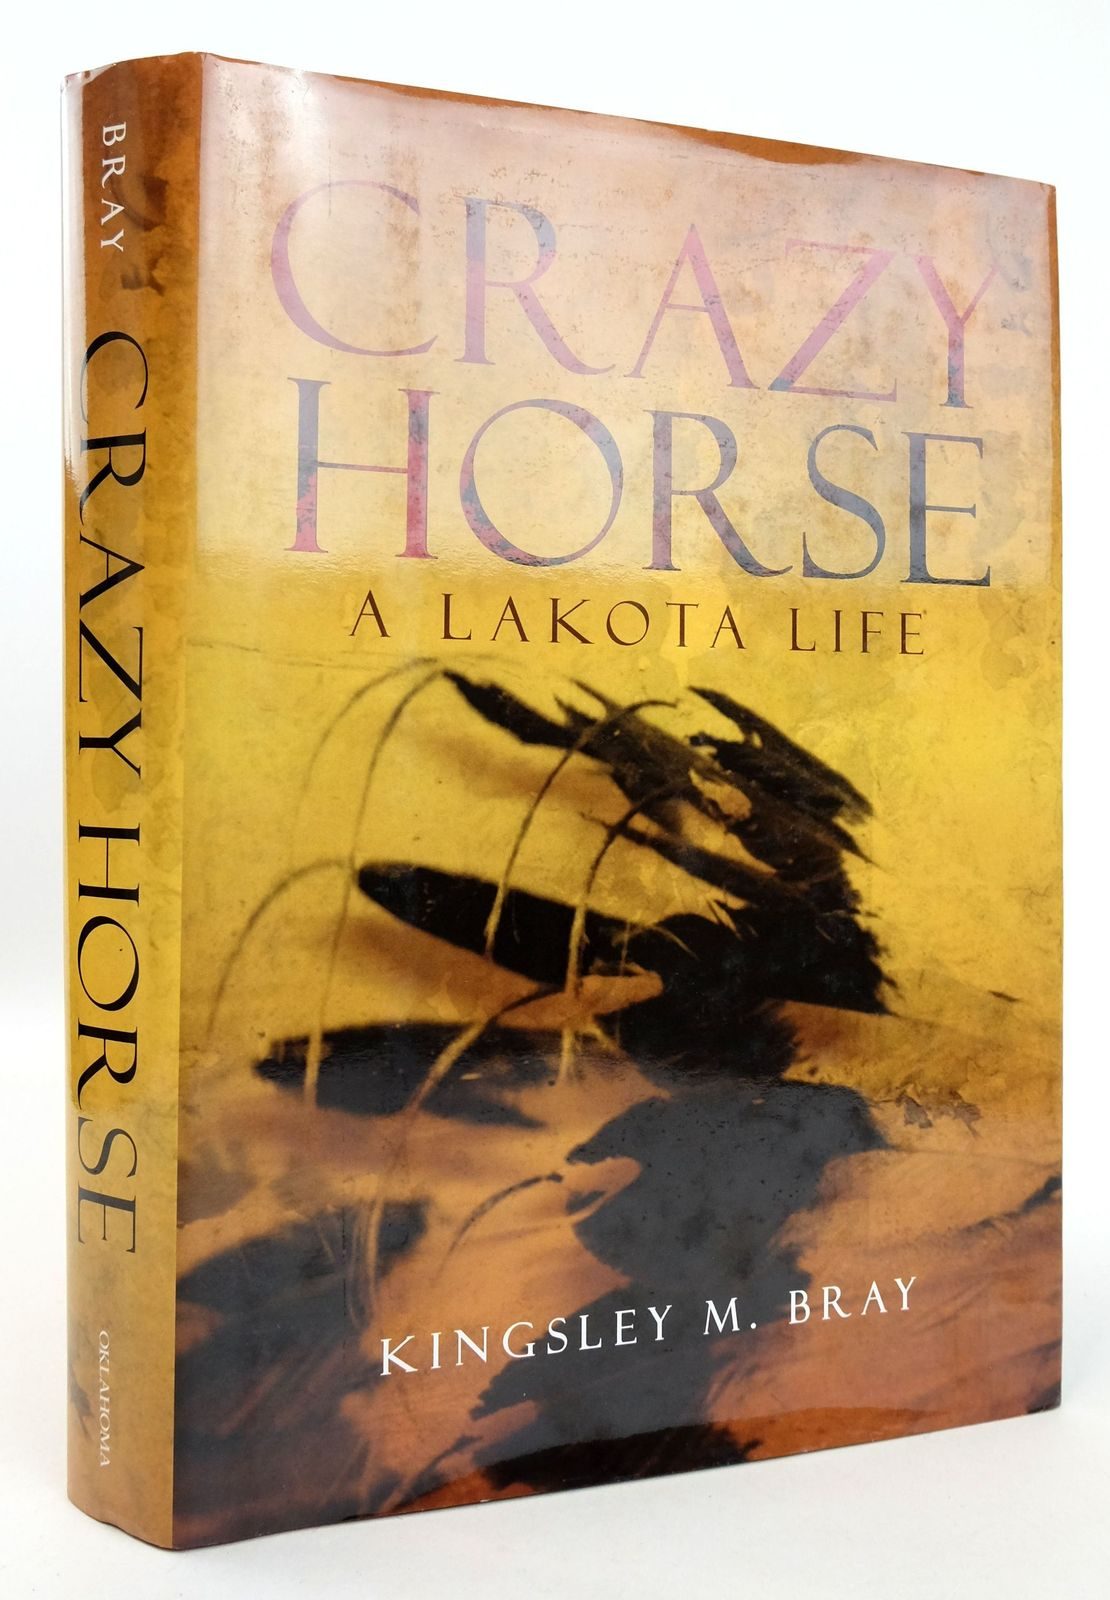 Photo of CRAZY HORSE: A LAKOTA LIFE written by Bray, Kingsley M. published by University of Oklahoma Press (STOCK CODE: 1819277)  for sale by Stella & Rose's Books